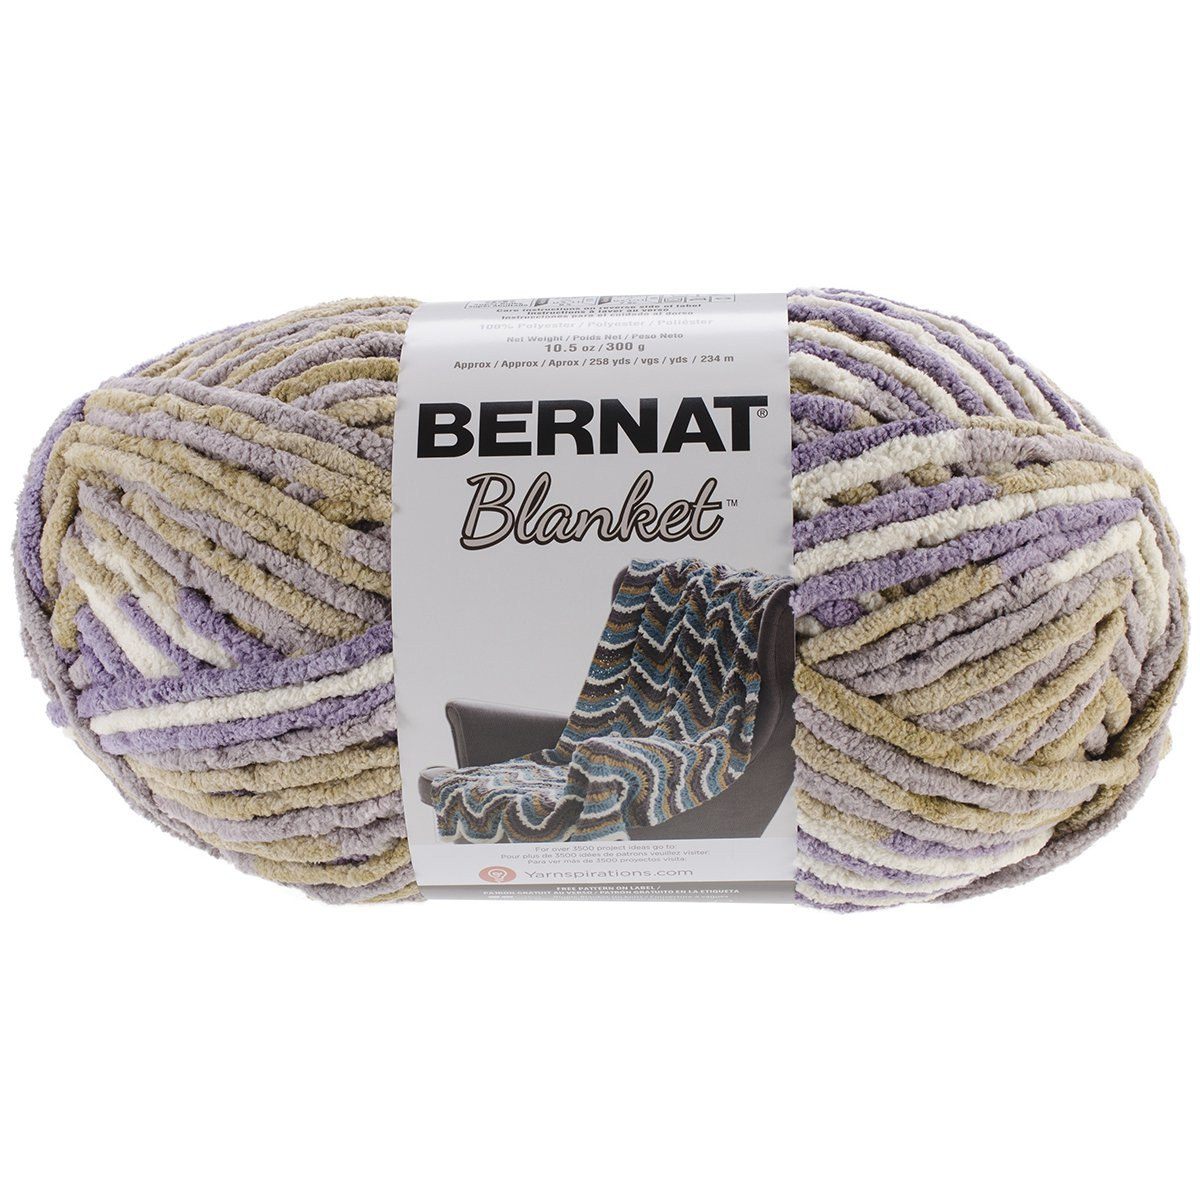 Bernat Blanket Big Ball Yarn Inspirational Spinrite Bernat Blanket Big Ball Yarn Of Innovative 41 Ideas Bernat Blanket Big Ball Yarn